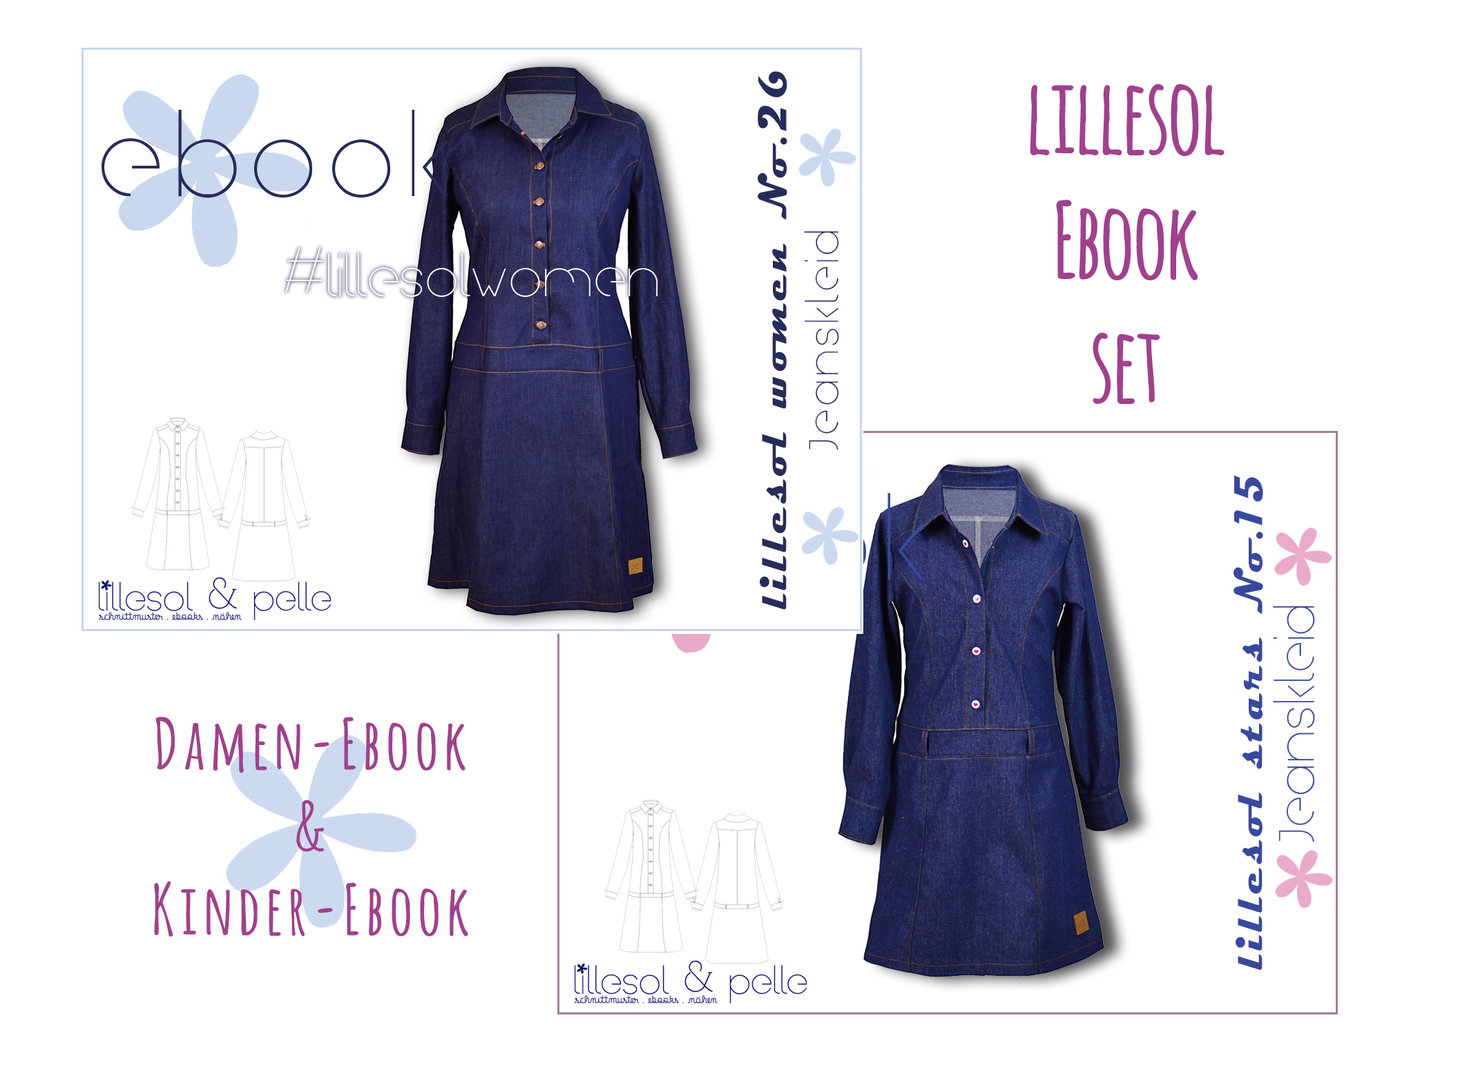 lillesol ebook set stars No. 15 und women No.26 *mit Video-Nähanleitung*